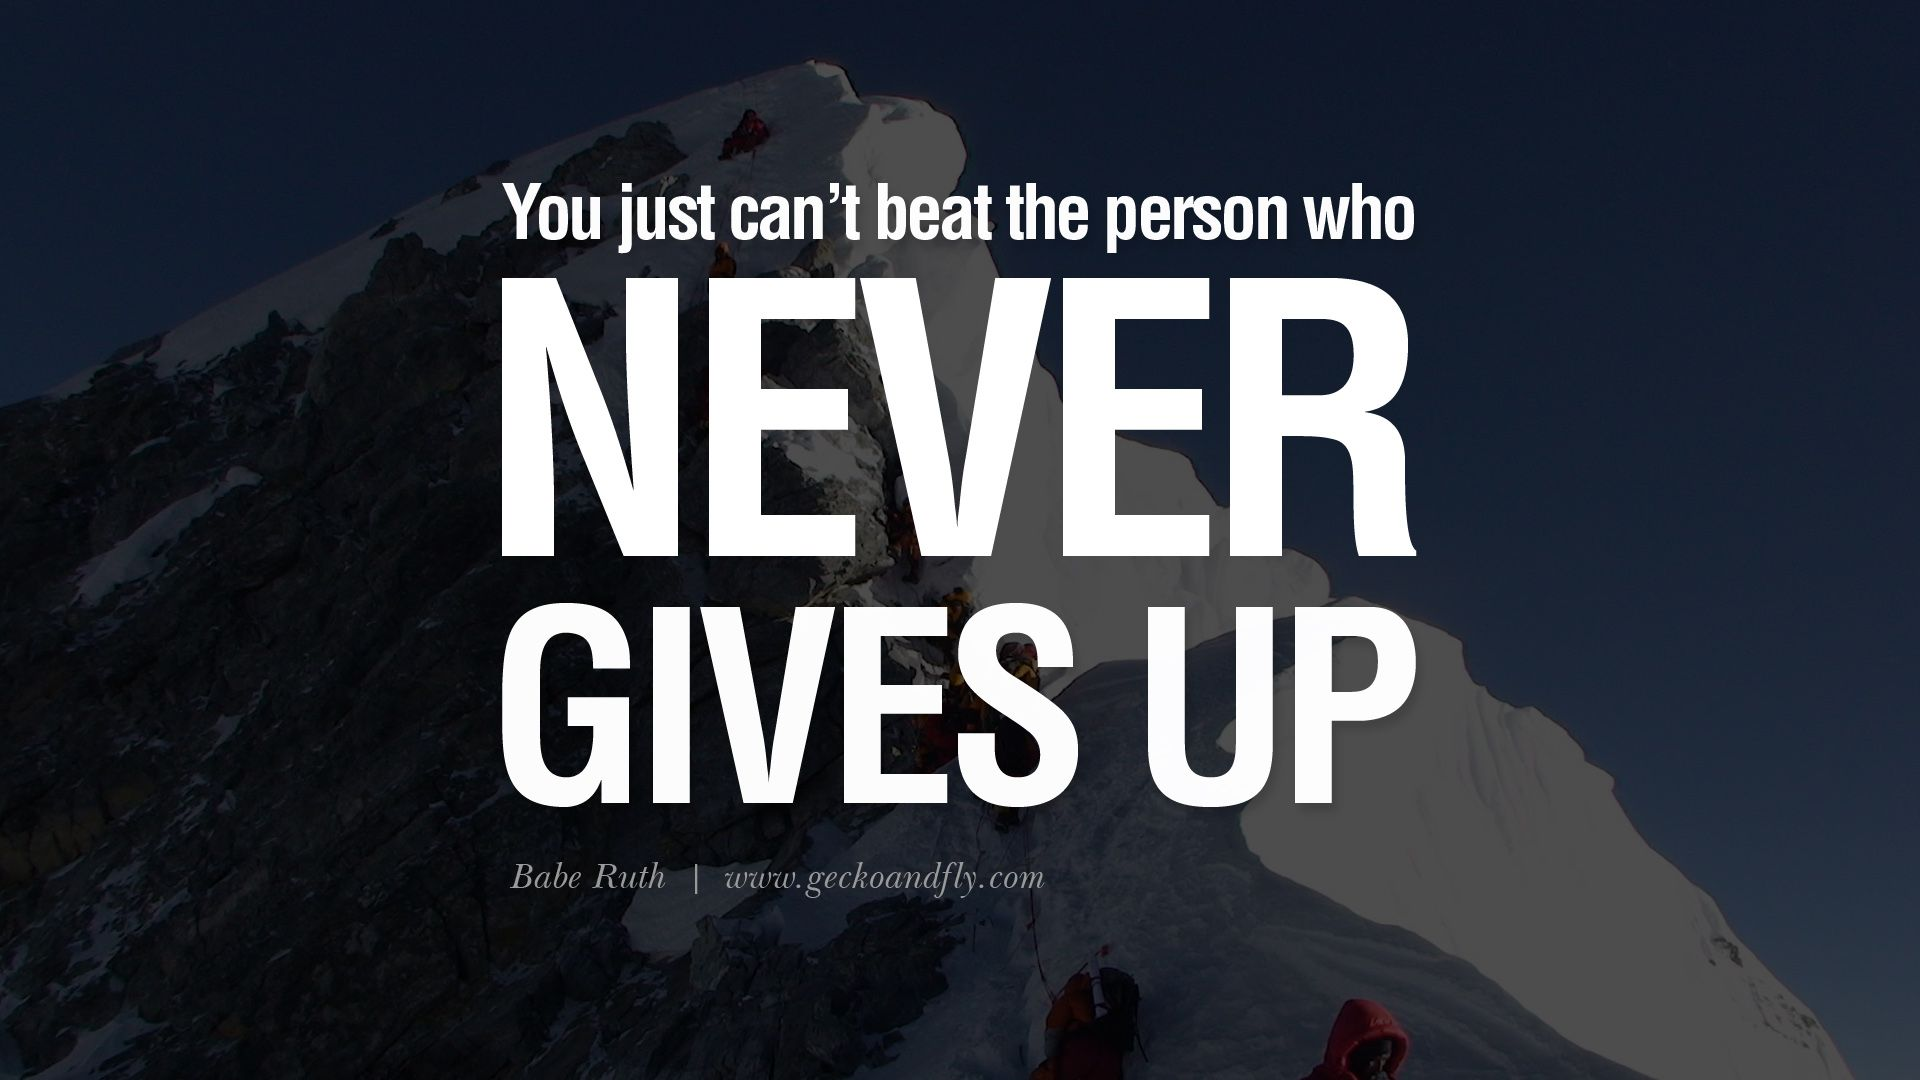 Sports Quotes Motivational Cool Inspiring Quotes Hr Wallpaper For Job Consultancyconsultant